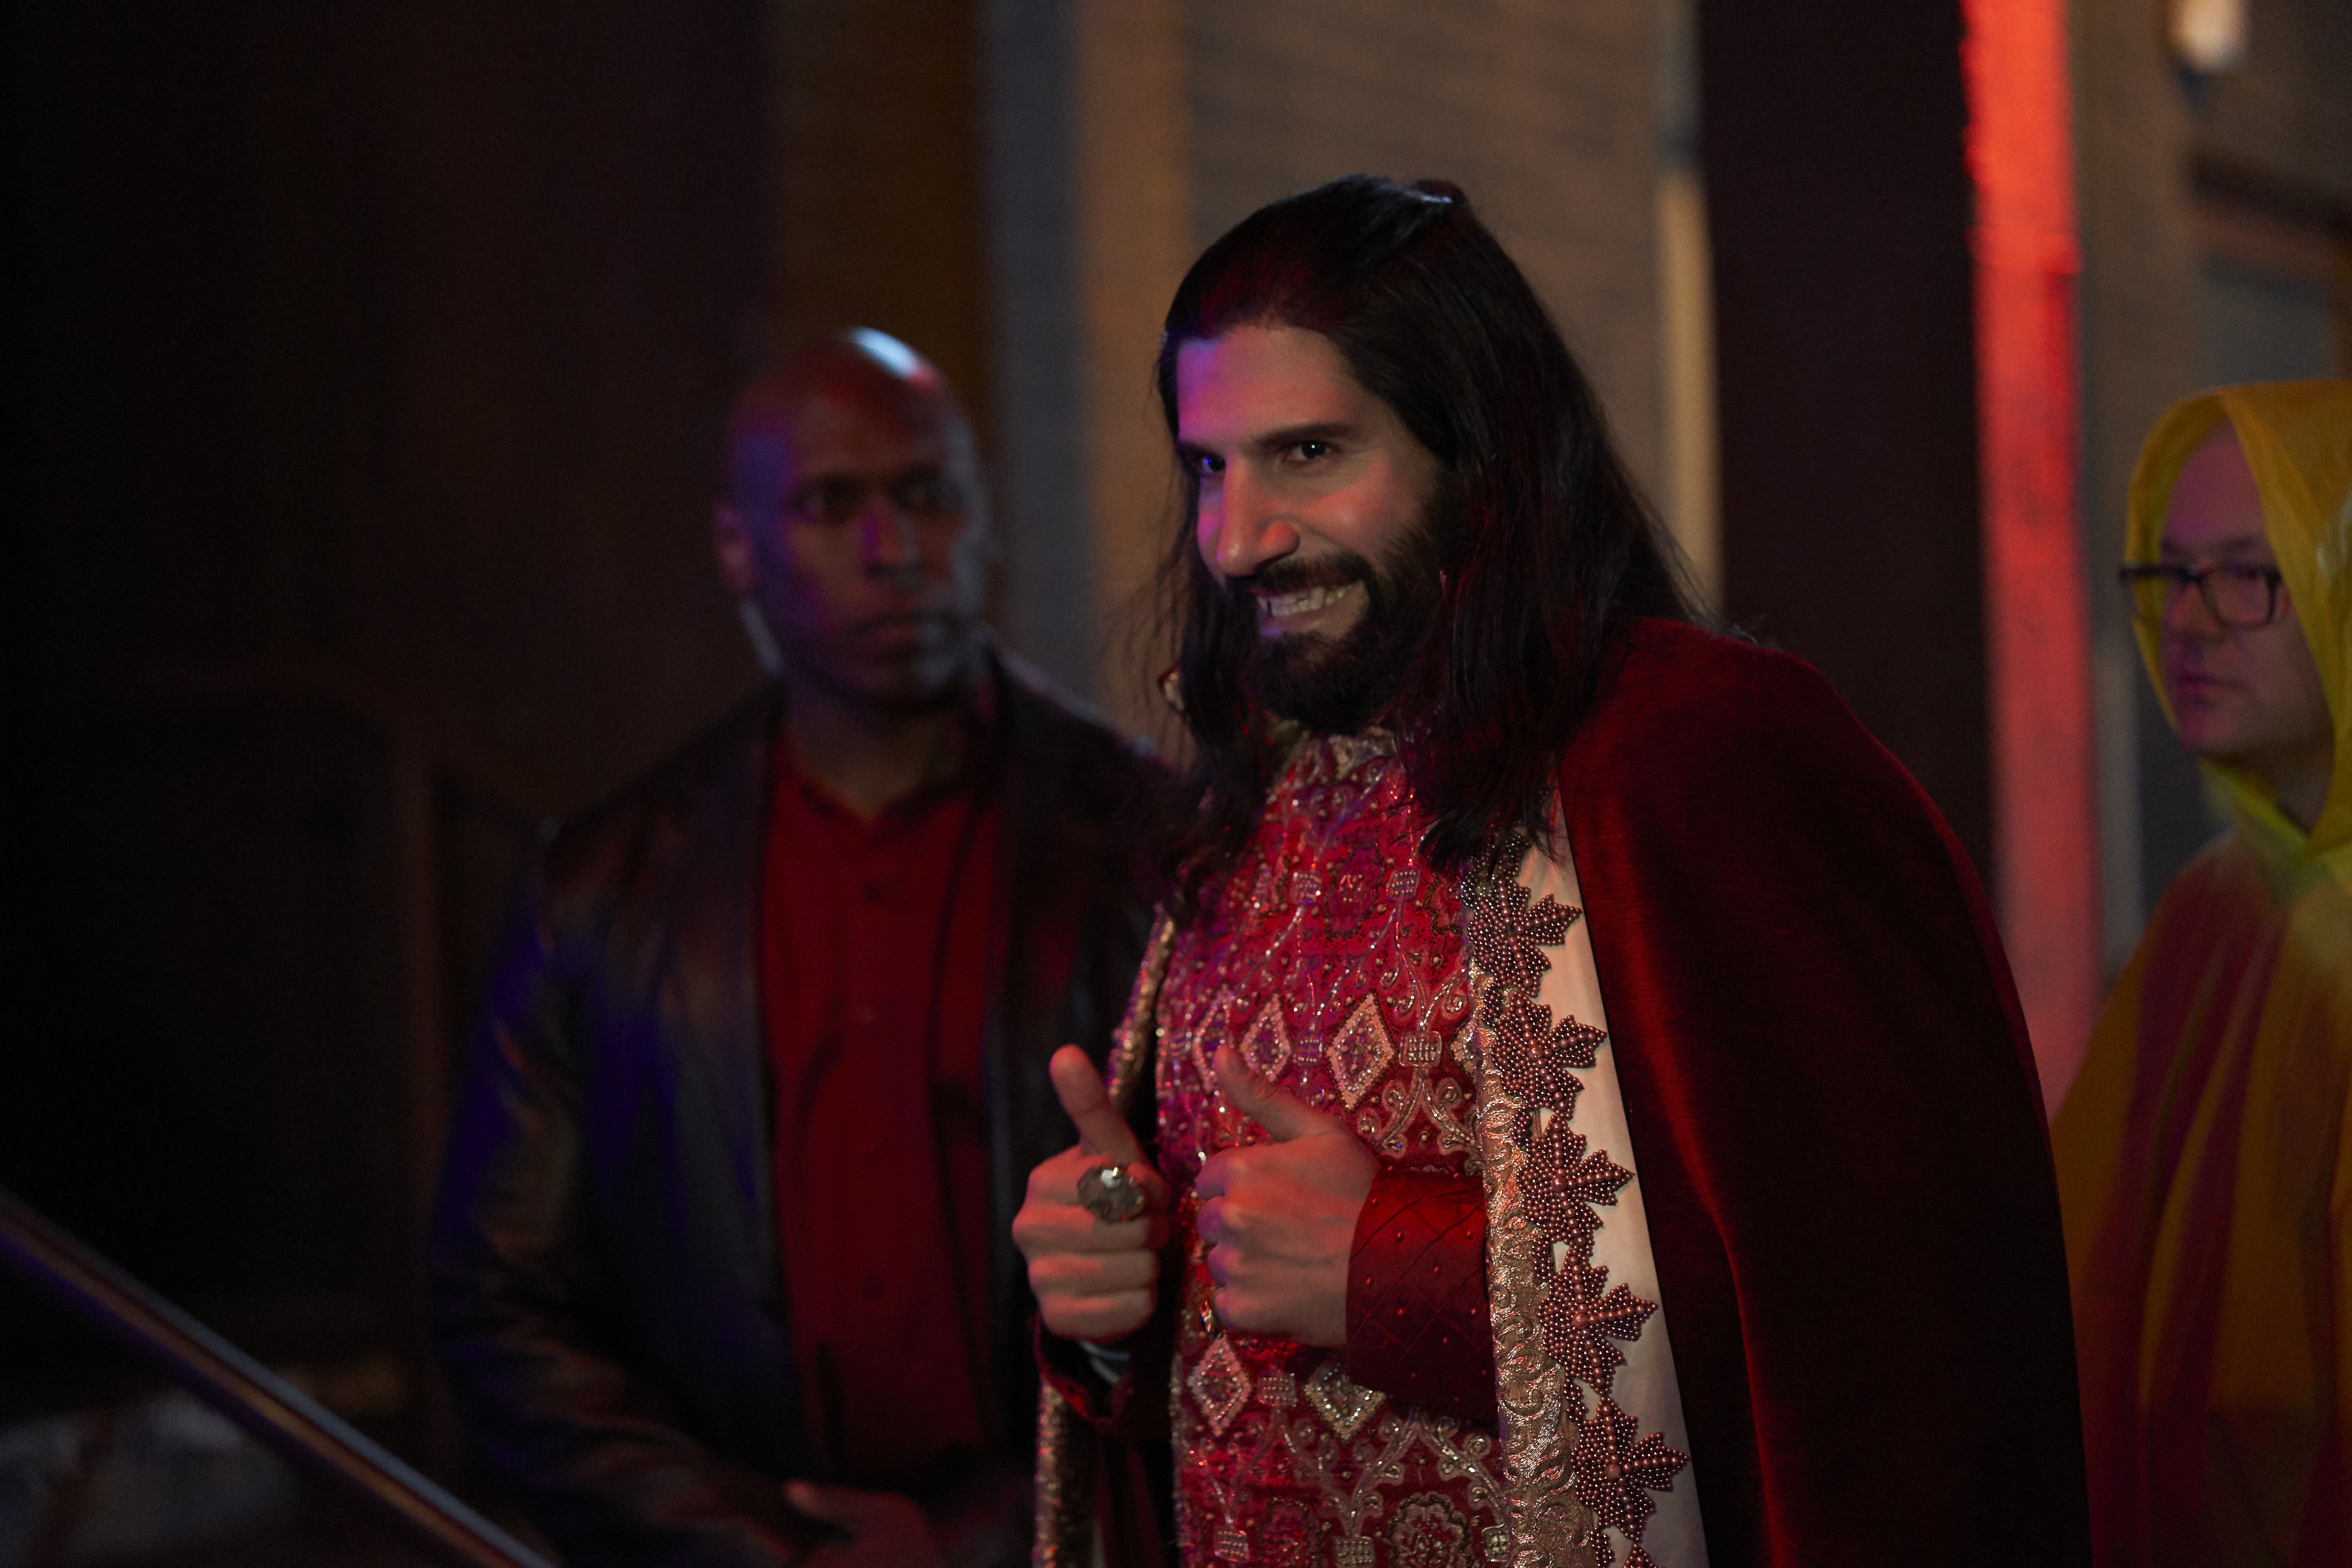 'What We Do in the Shadows': Jemaine Clement Brings Comedy Back in the Dramedy Era